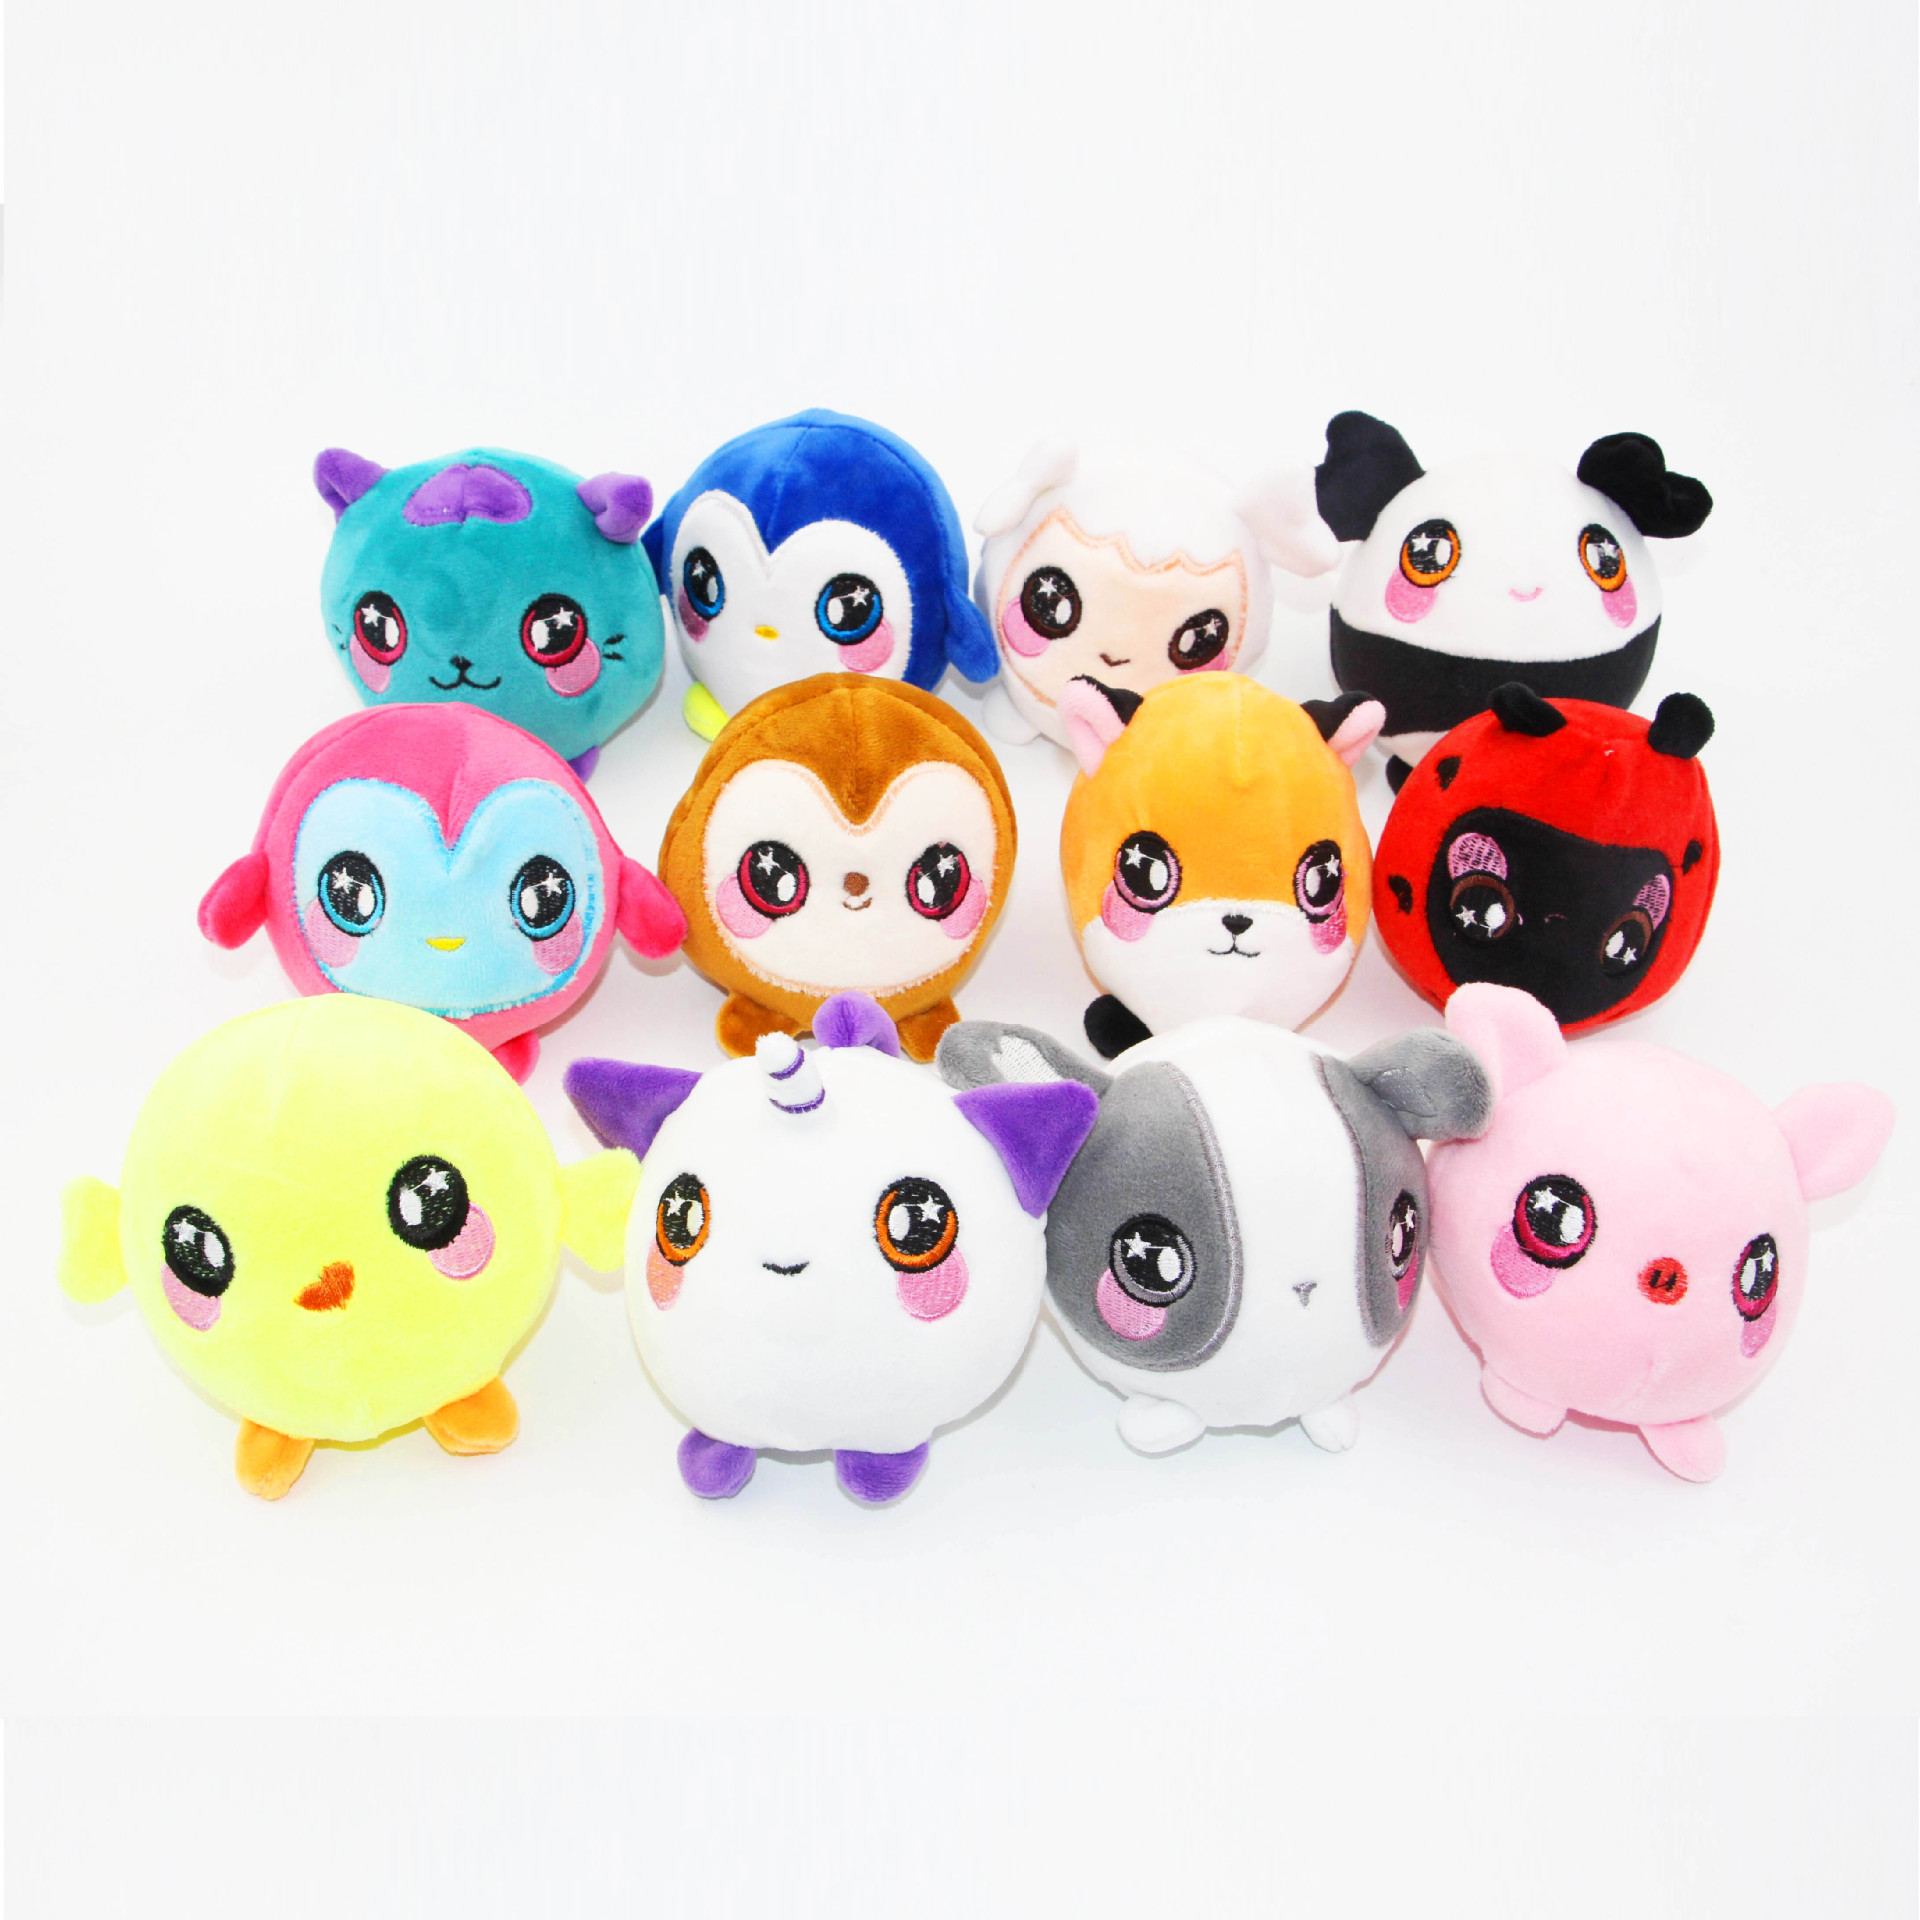 Funny Sweet Plush Rebound Toy Slow Rising Animal Toys Squeezamals Soft Plush cute Dolls Stress Relief Gift For Children diamond huge pink blue giant slow rising soft toy gift collection squishying 21 17cm antistress ball relief funny gift toys